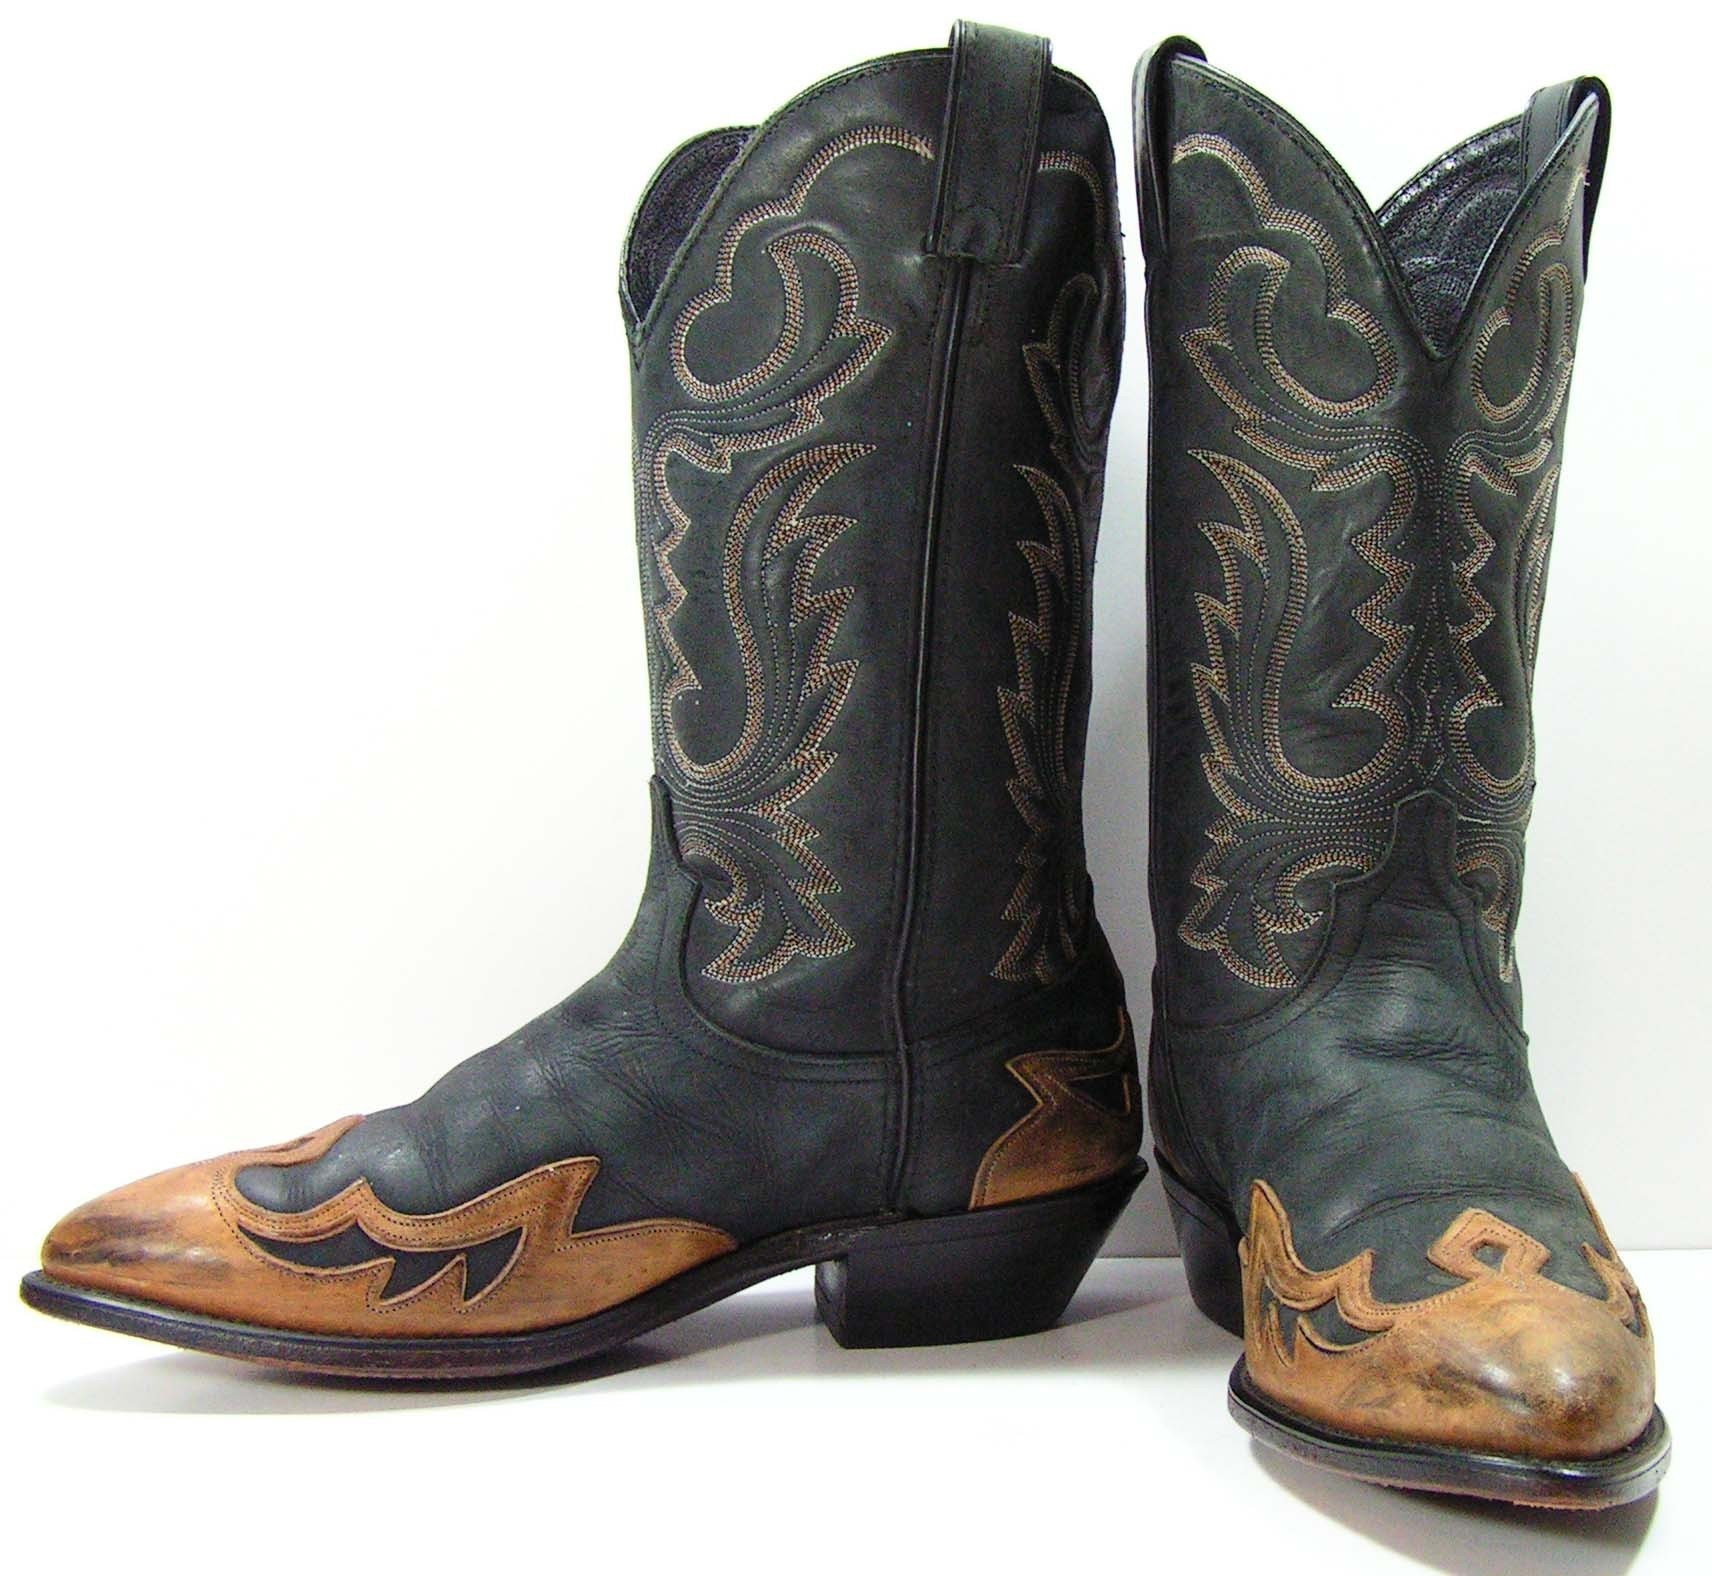 vintage code west cowboy boots mens 8 5 ee or womens 10 wide